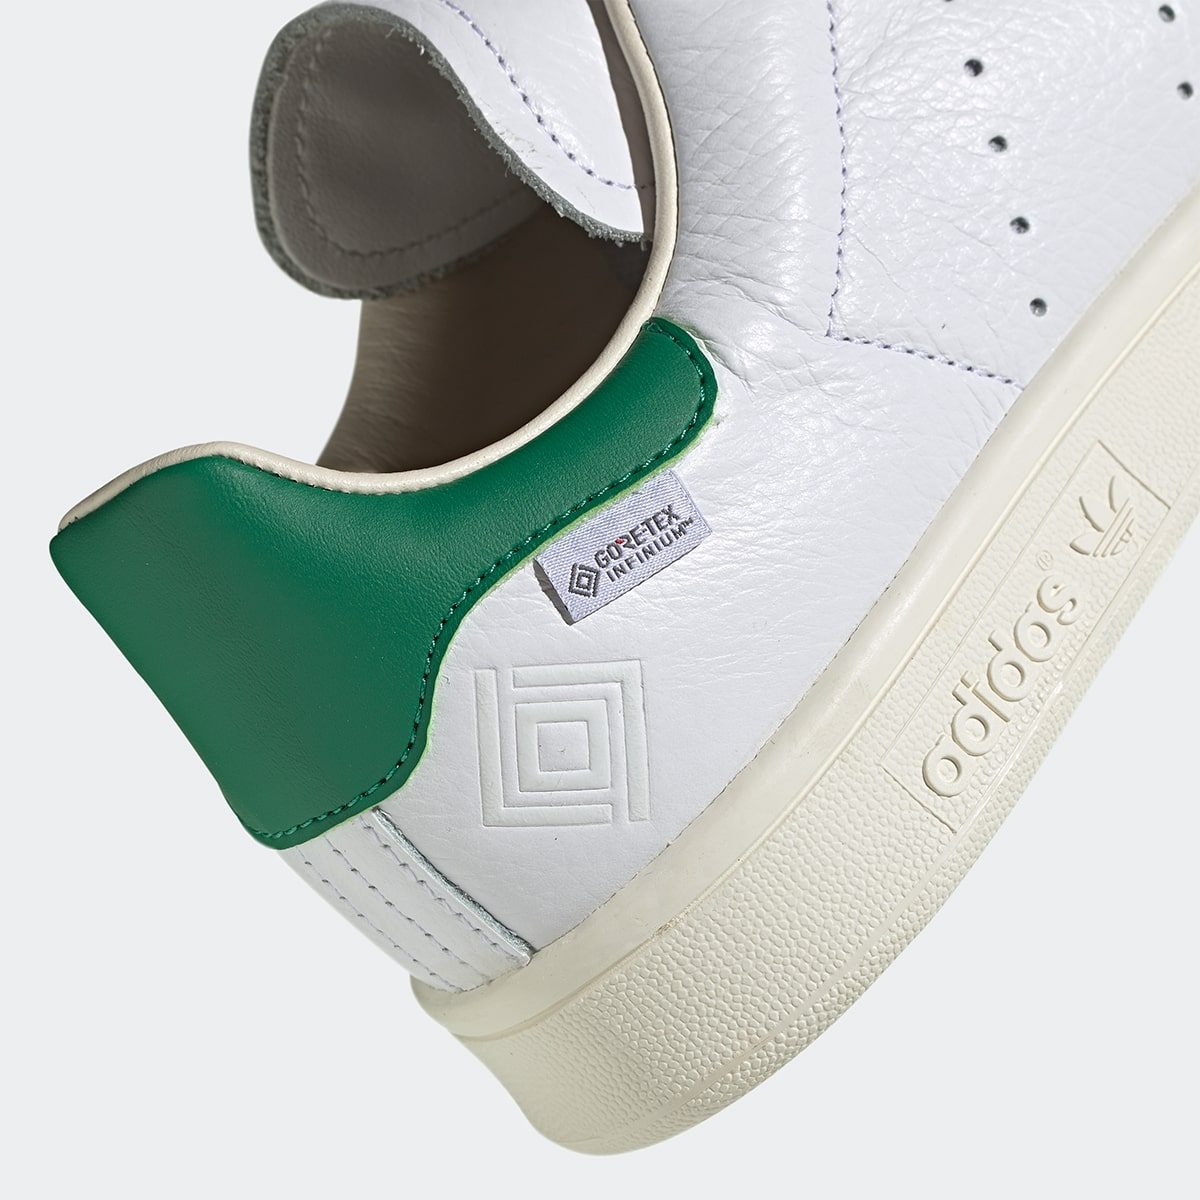 adidas Link With GORE-TEX to Keep your Toes Toasty in the Stan Smith